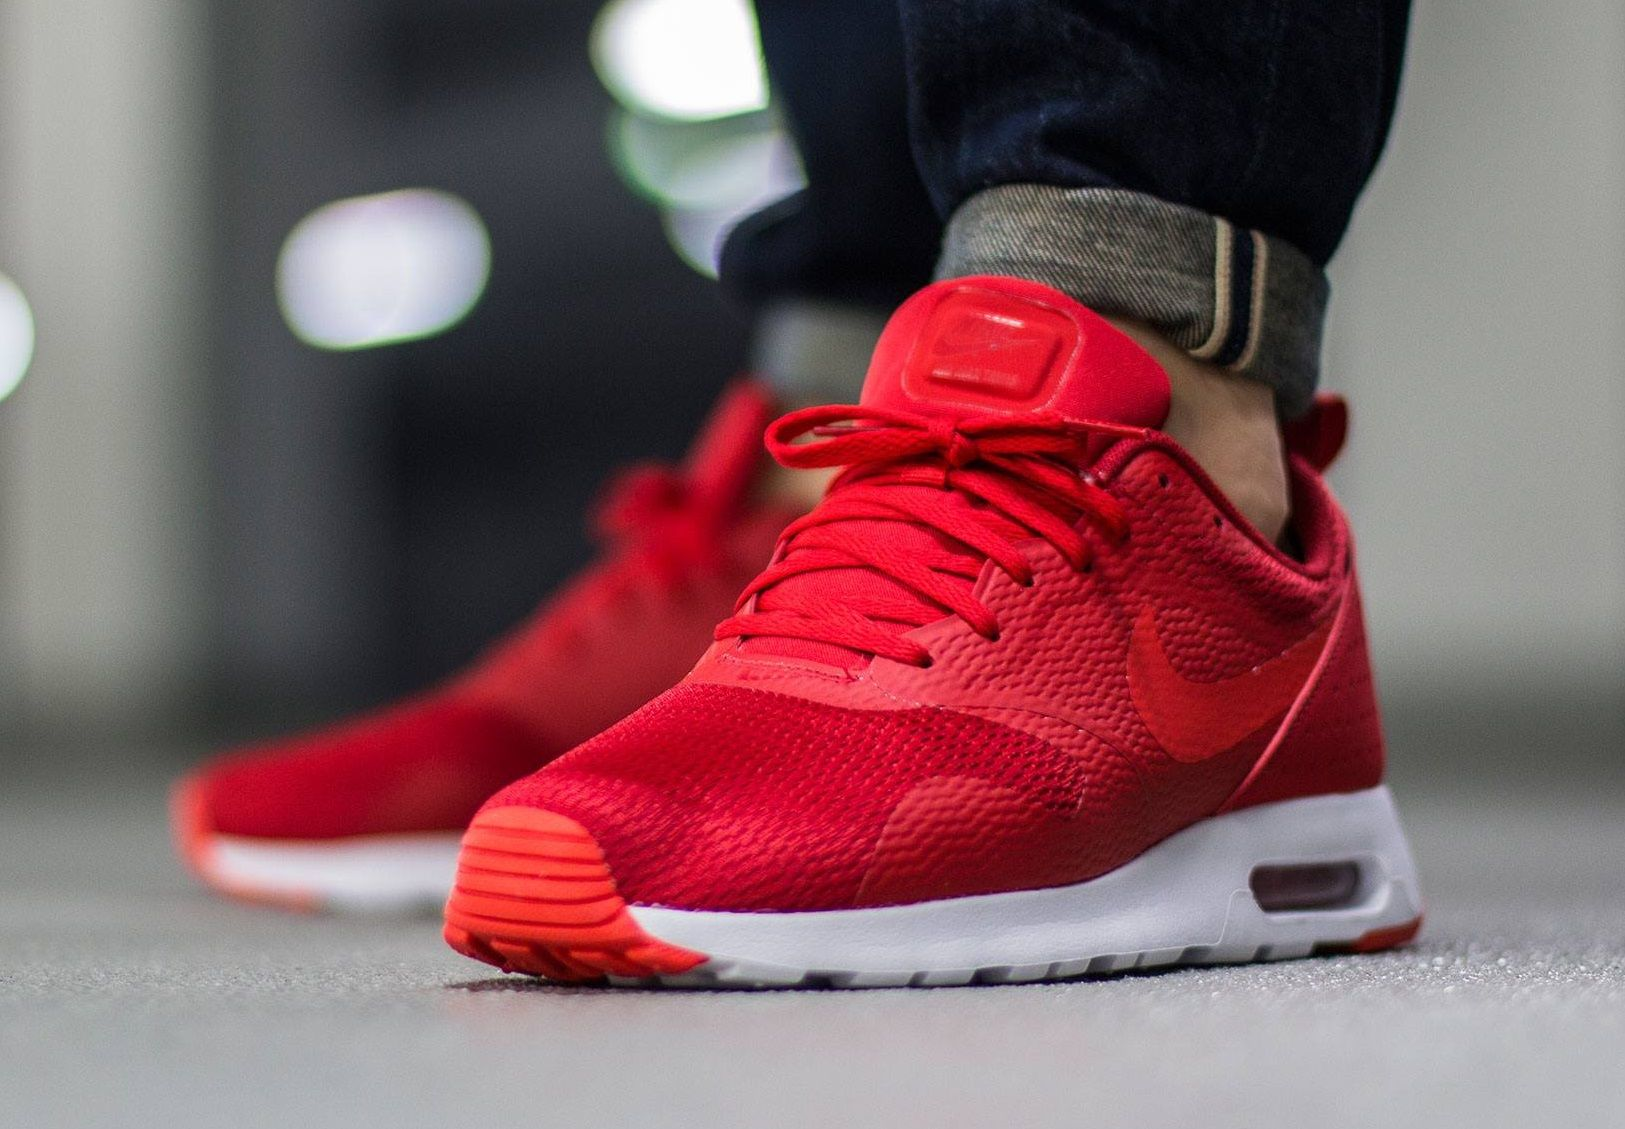 88210ac8dc1 Nike Air Max Tavas  University Red